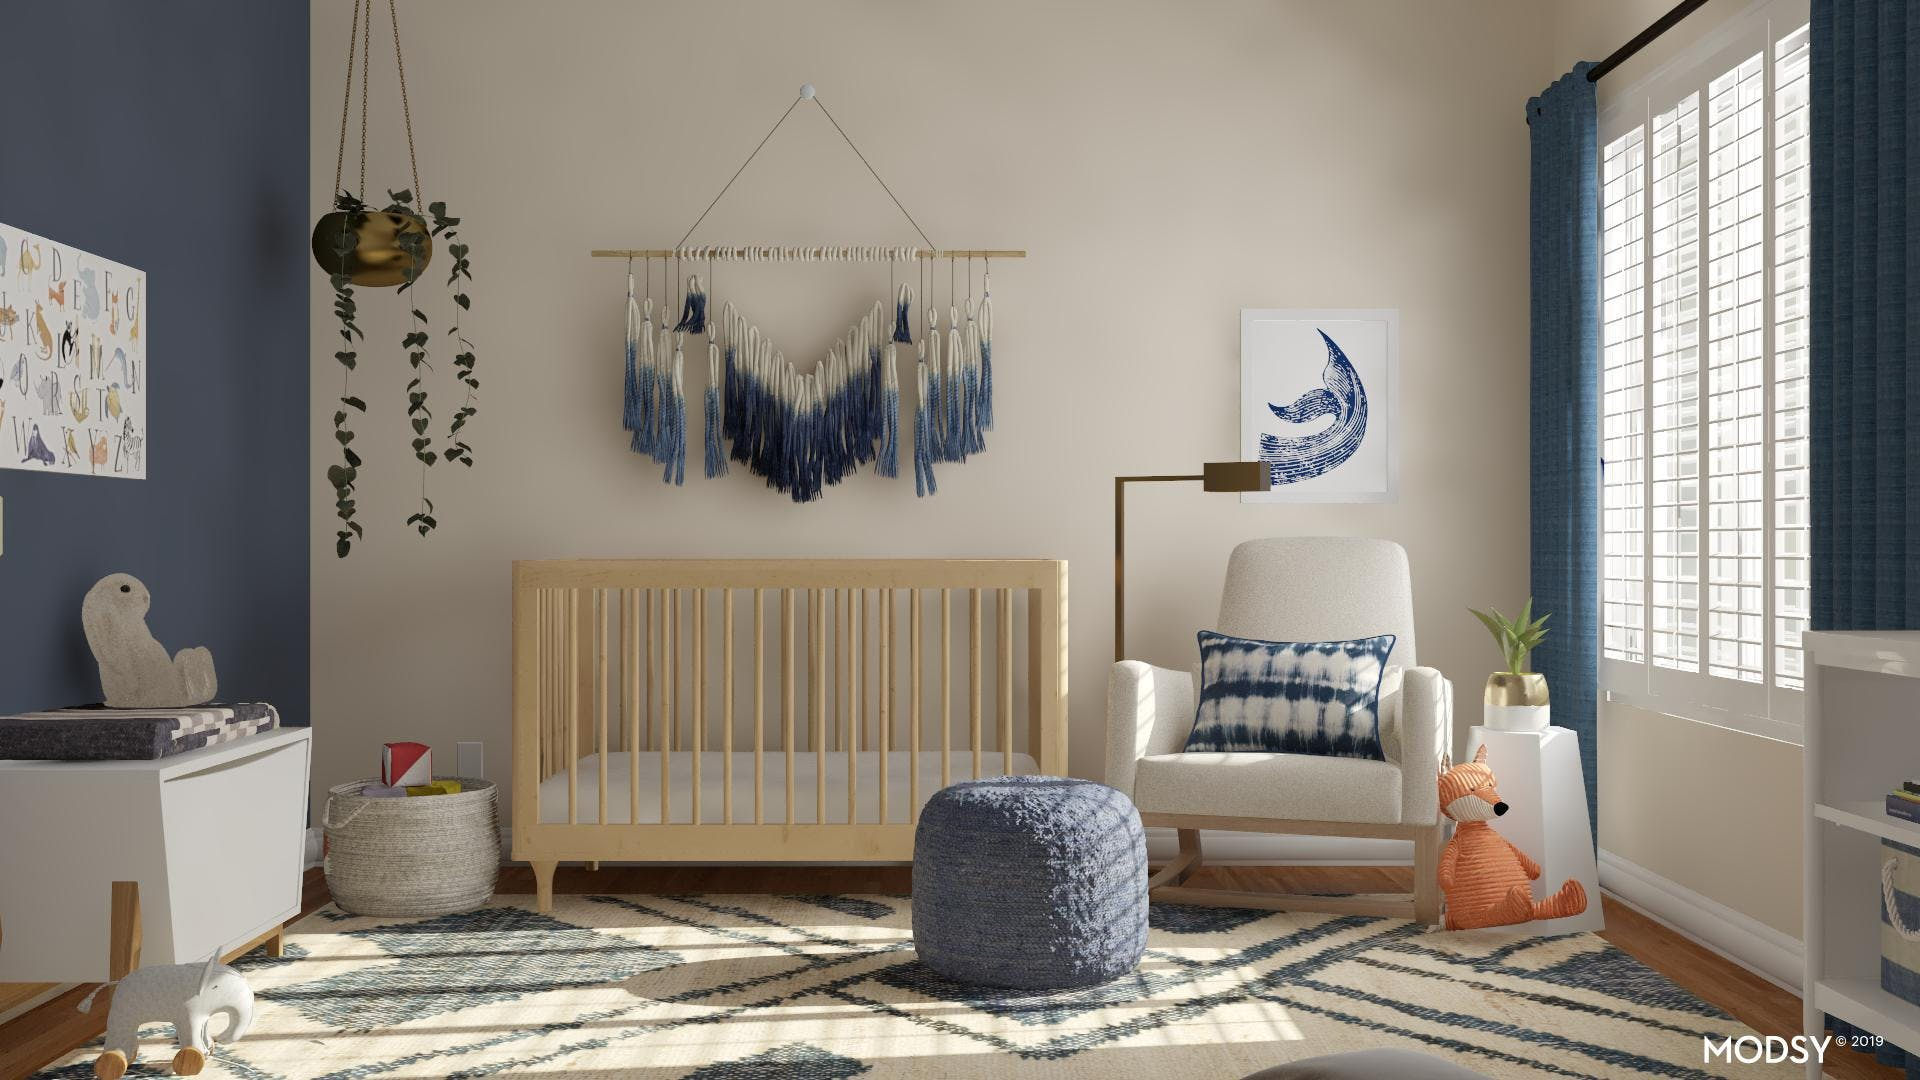 A Splash of Blue in a Mid-Century Nursery